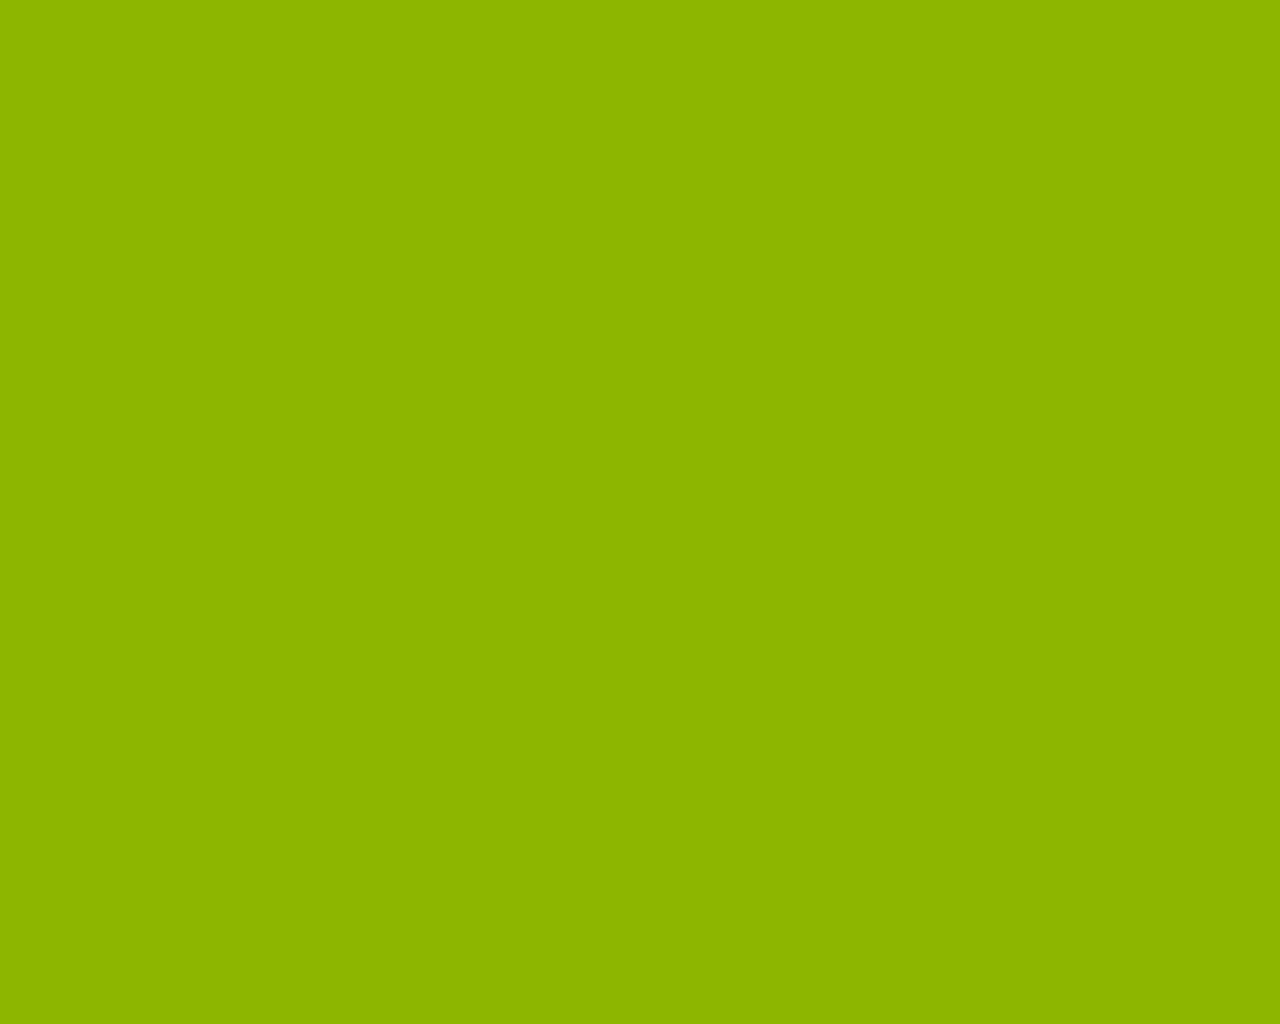 1280x1024 Apple Green Solid Color Background